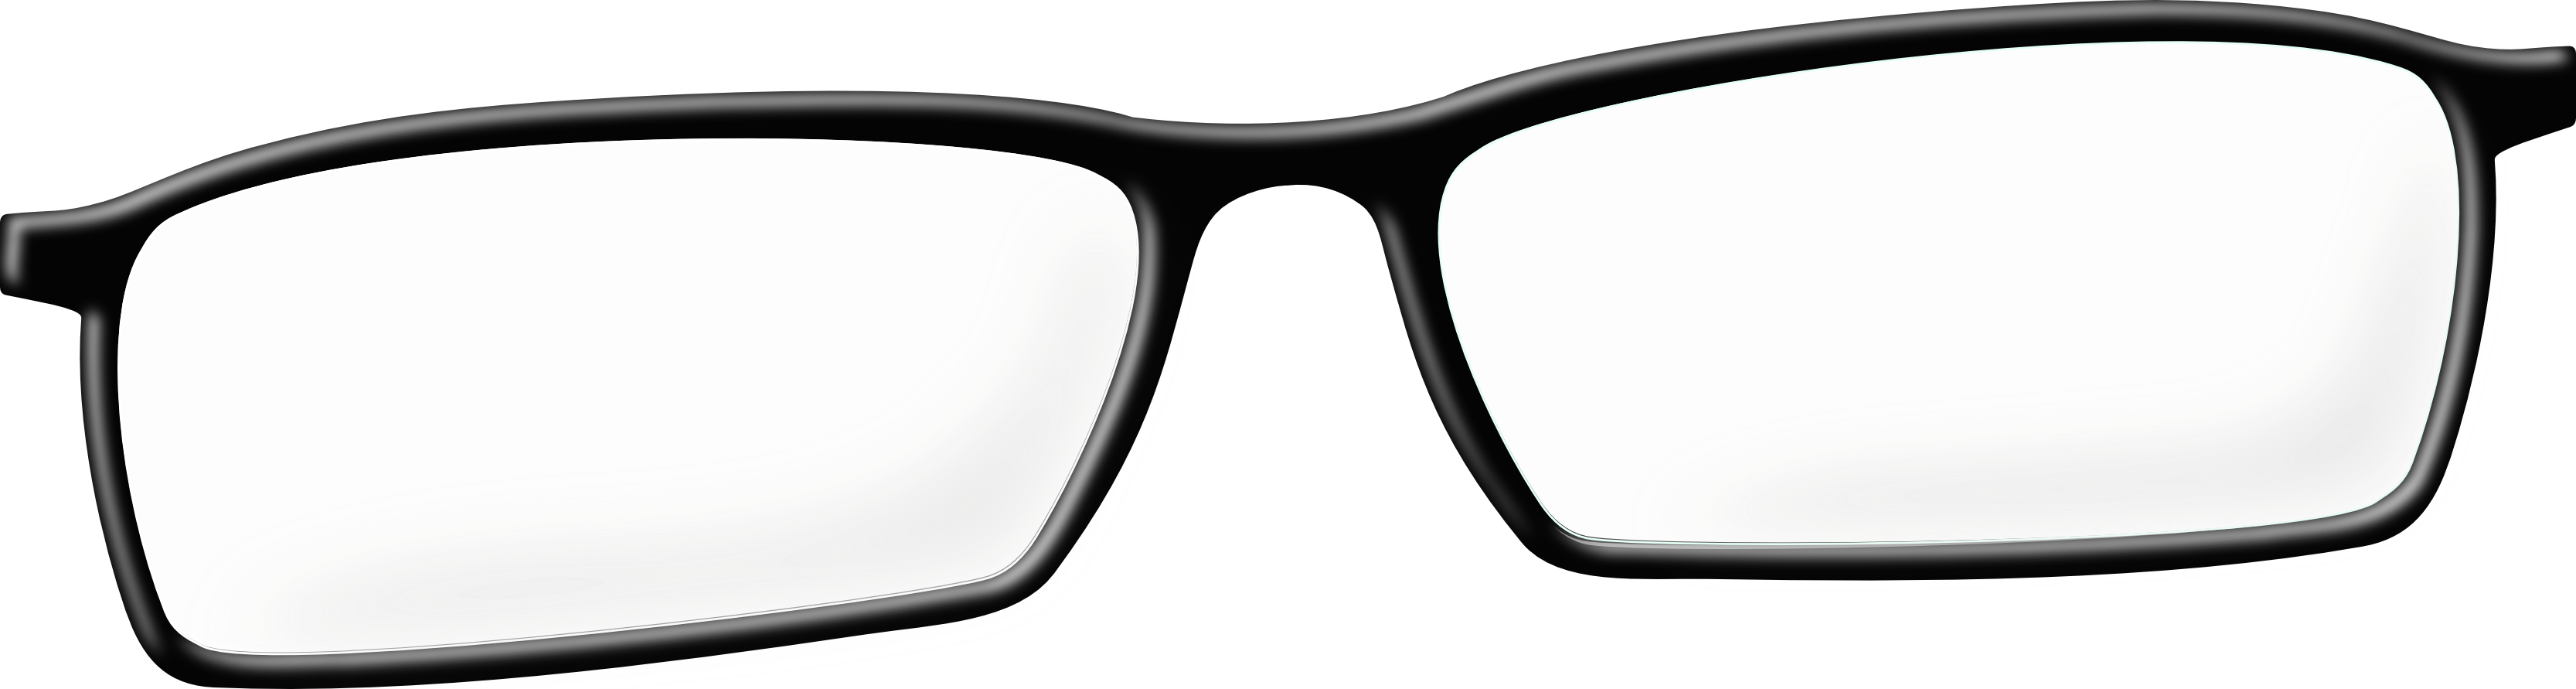 Sunglasses clipart transparent background.  collection of glasses